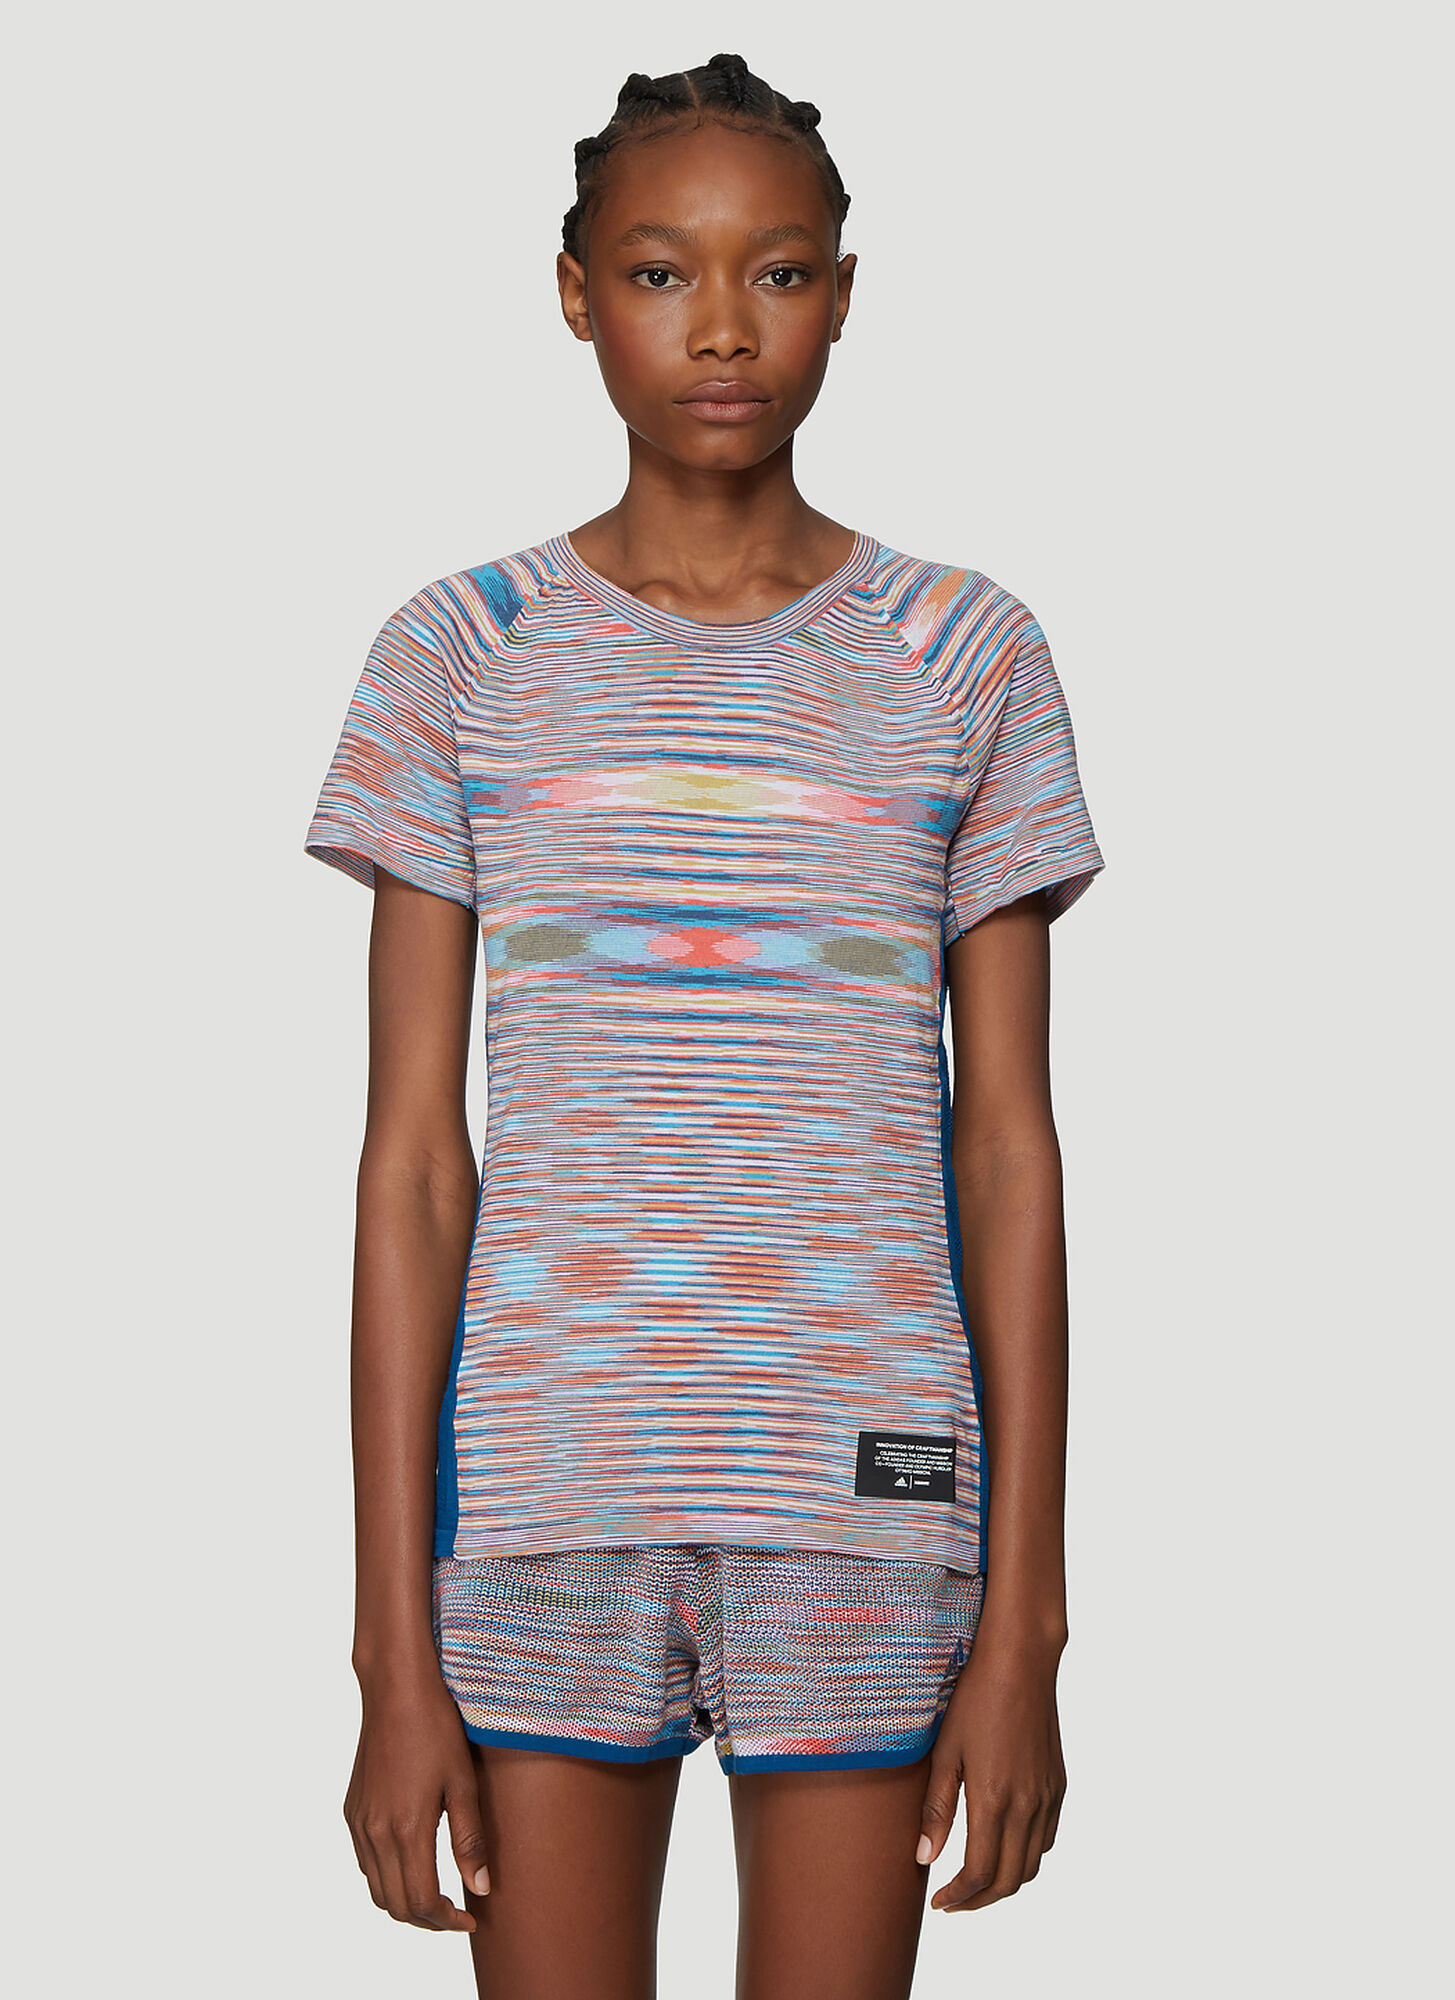 Adidas x Missoni X Missoni City Runners Unite T-Shirt in Blue